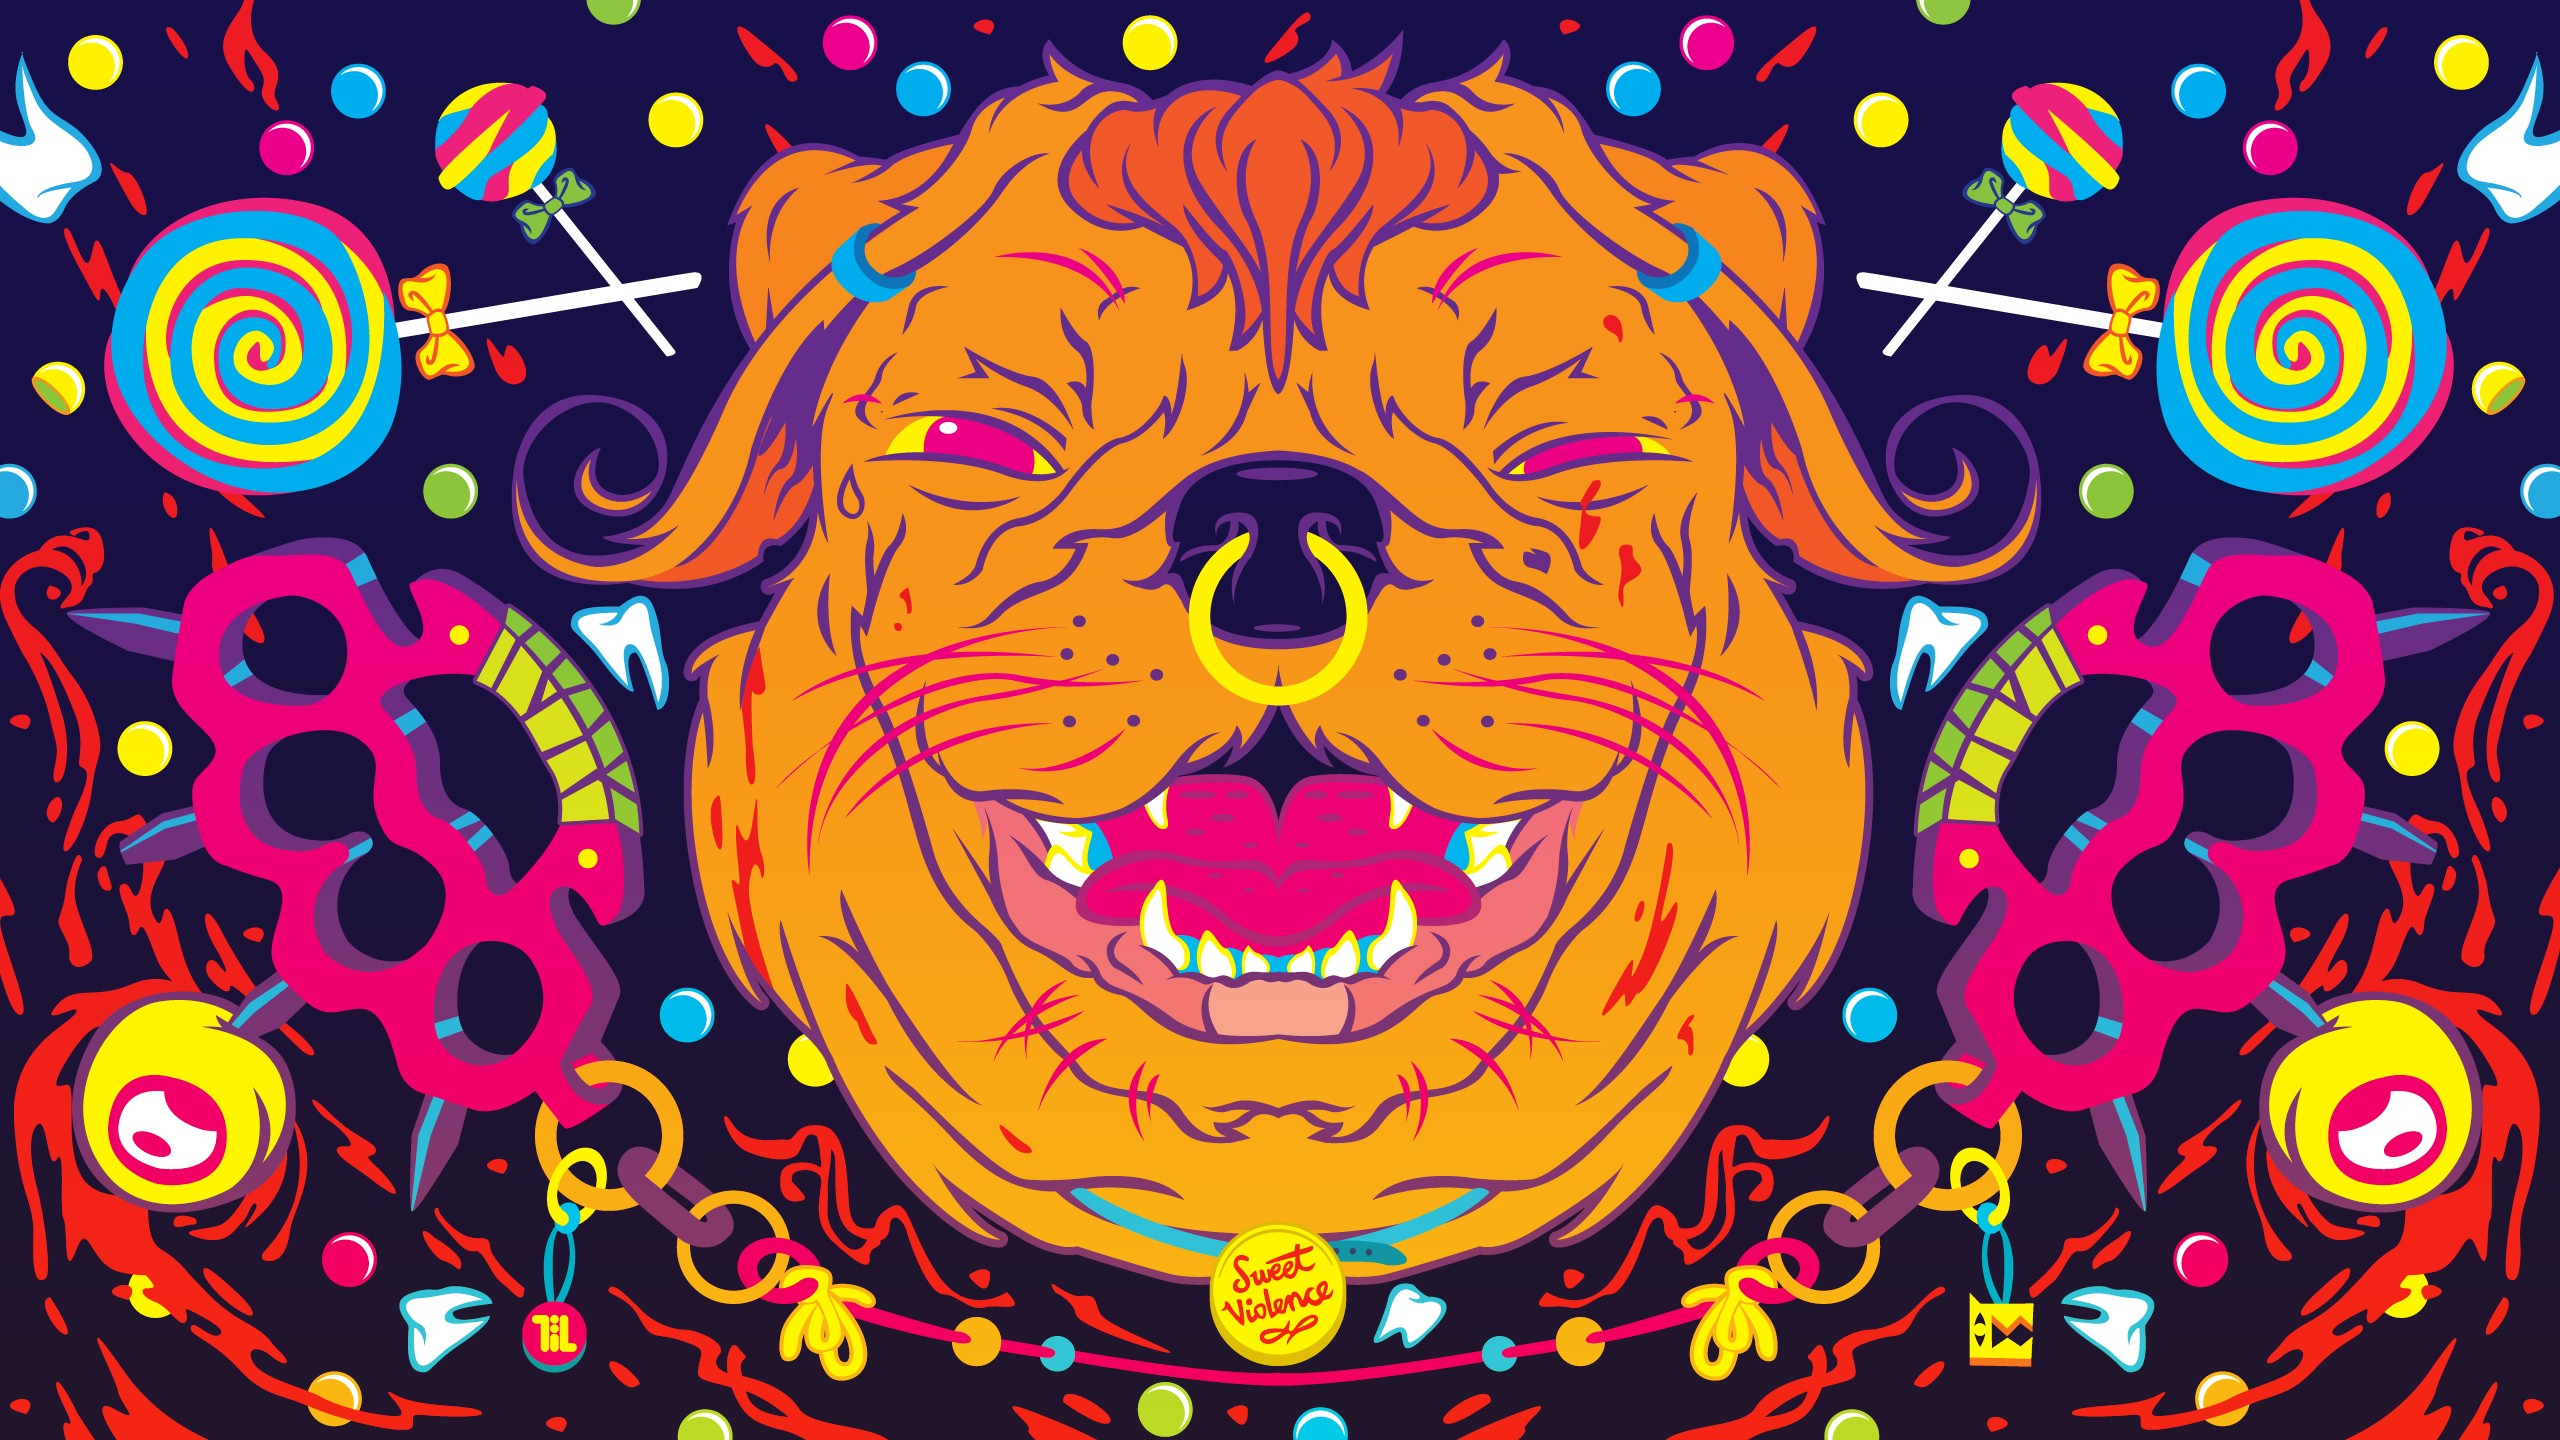 dogs psychedelic color art abstract wallpaper 2560x1440 34174 2560x1440